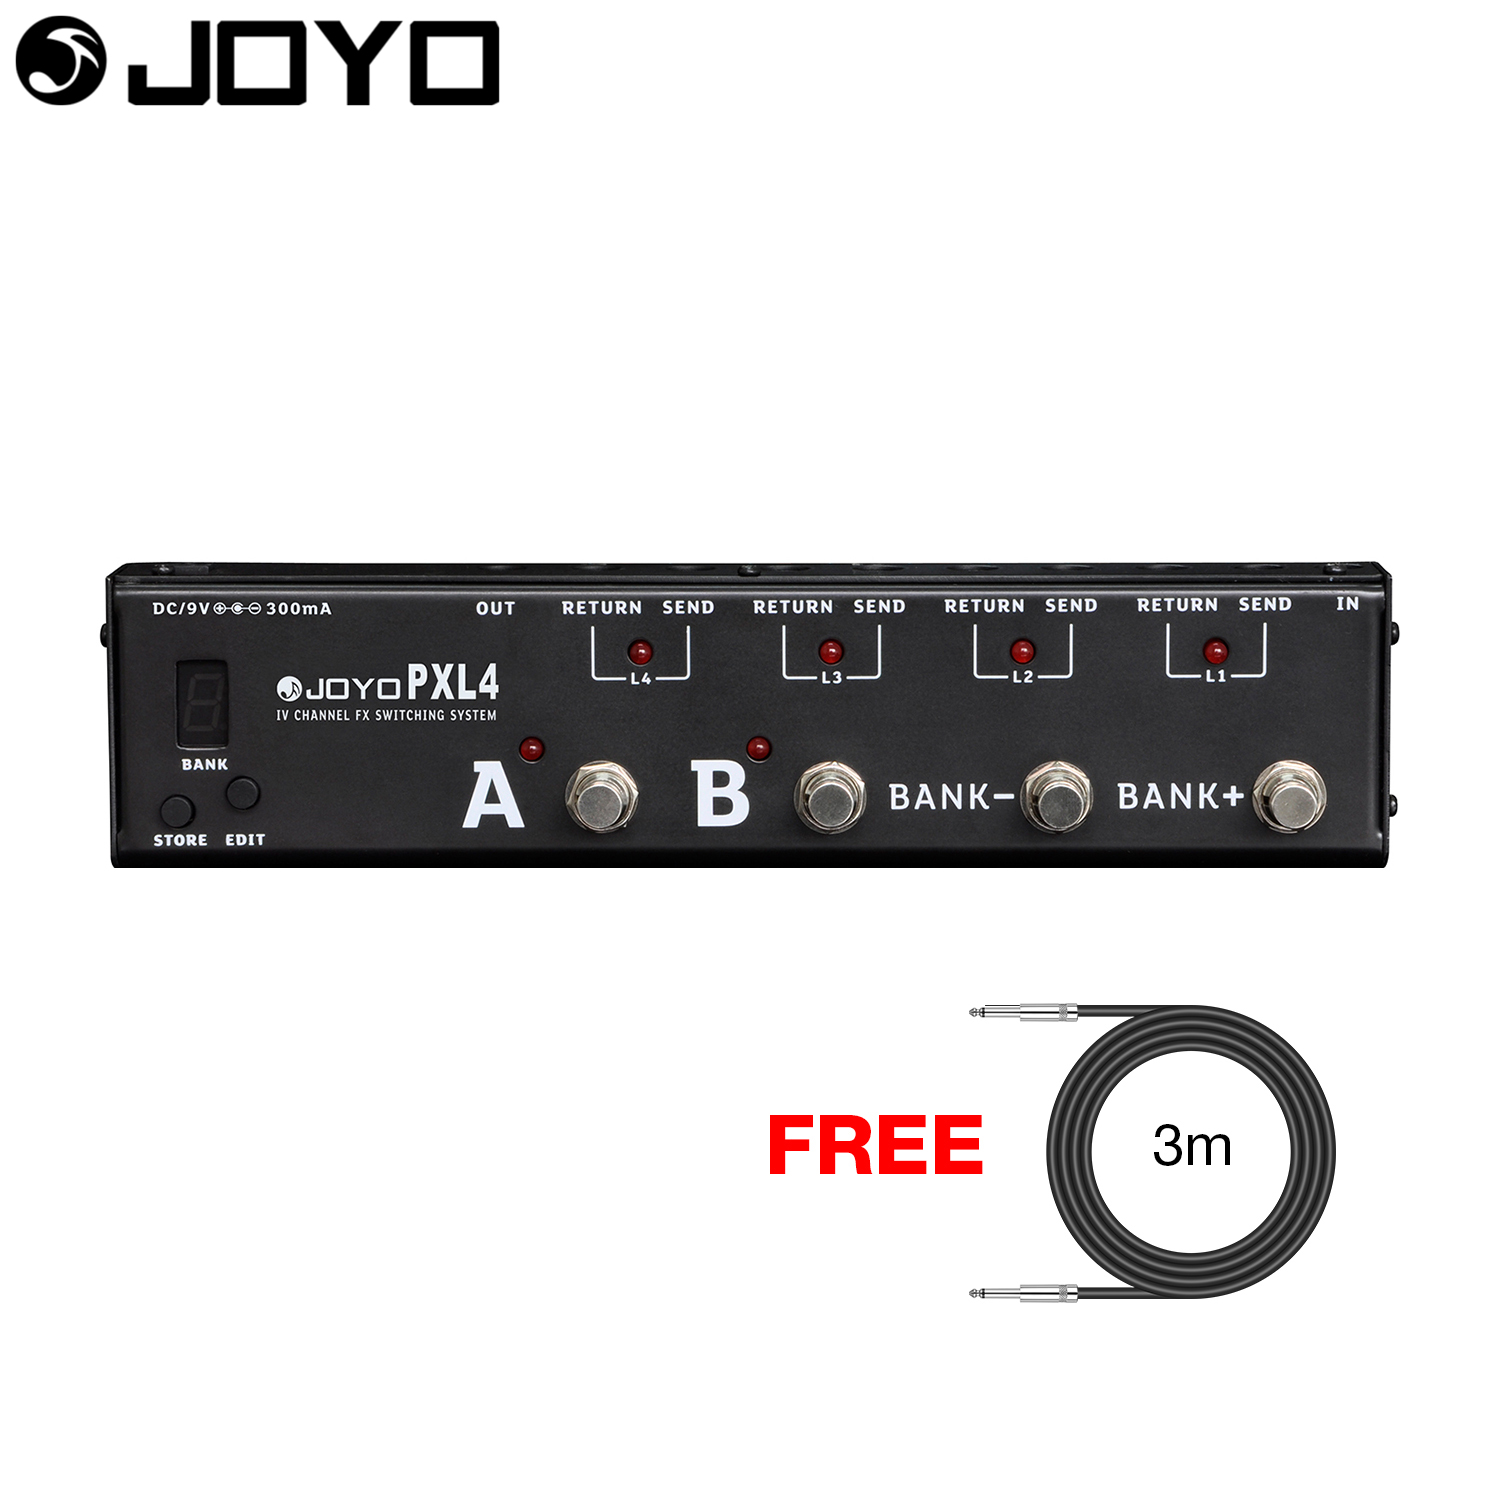 JOYO Multi-effects Guitar Effect Pedal Switcher Looper True Bypass Programmable 4 Loop PXL-4 with Free 3m Cable aroma adr 3 dumbler amp simulator guitar effect pedal mini single pedals with true bypass aluminium alloy guitar accessories